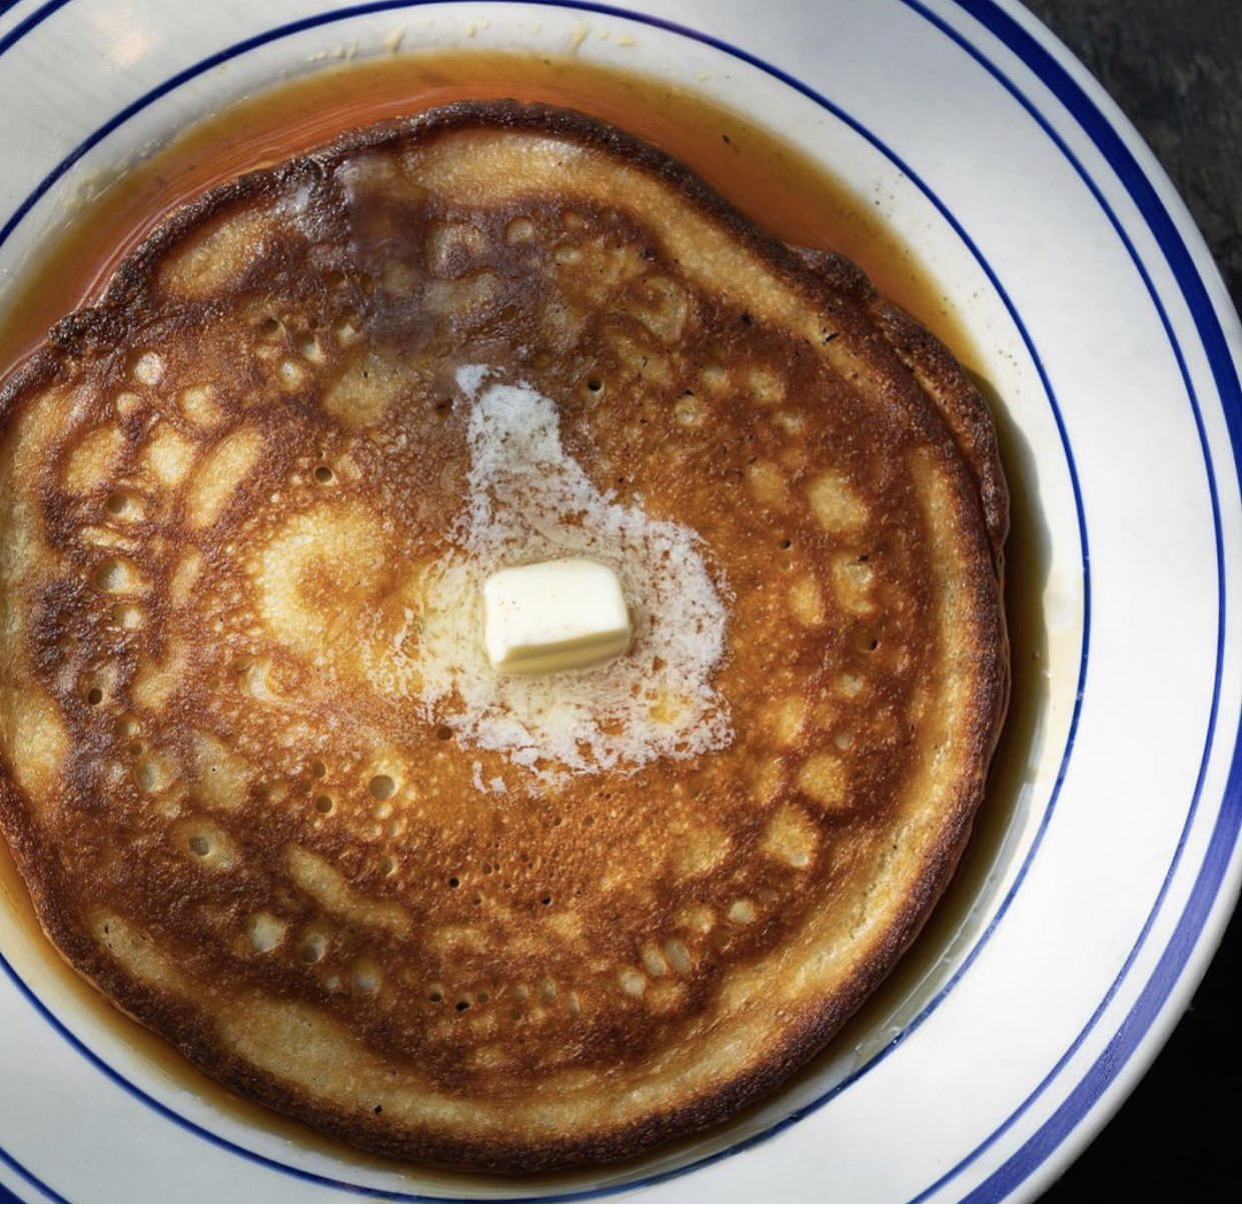 up close photo of a pancake with butter on top